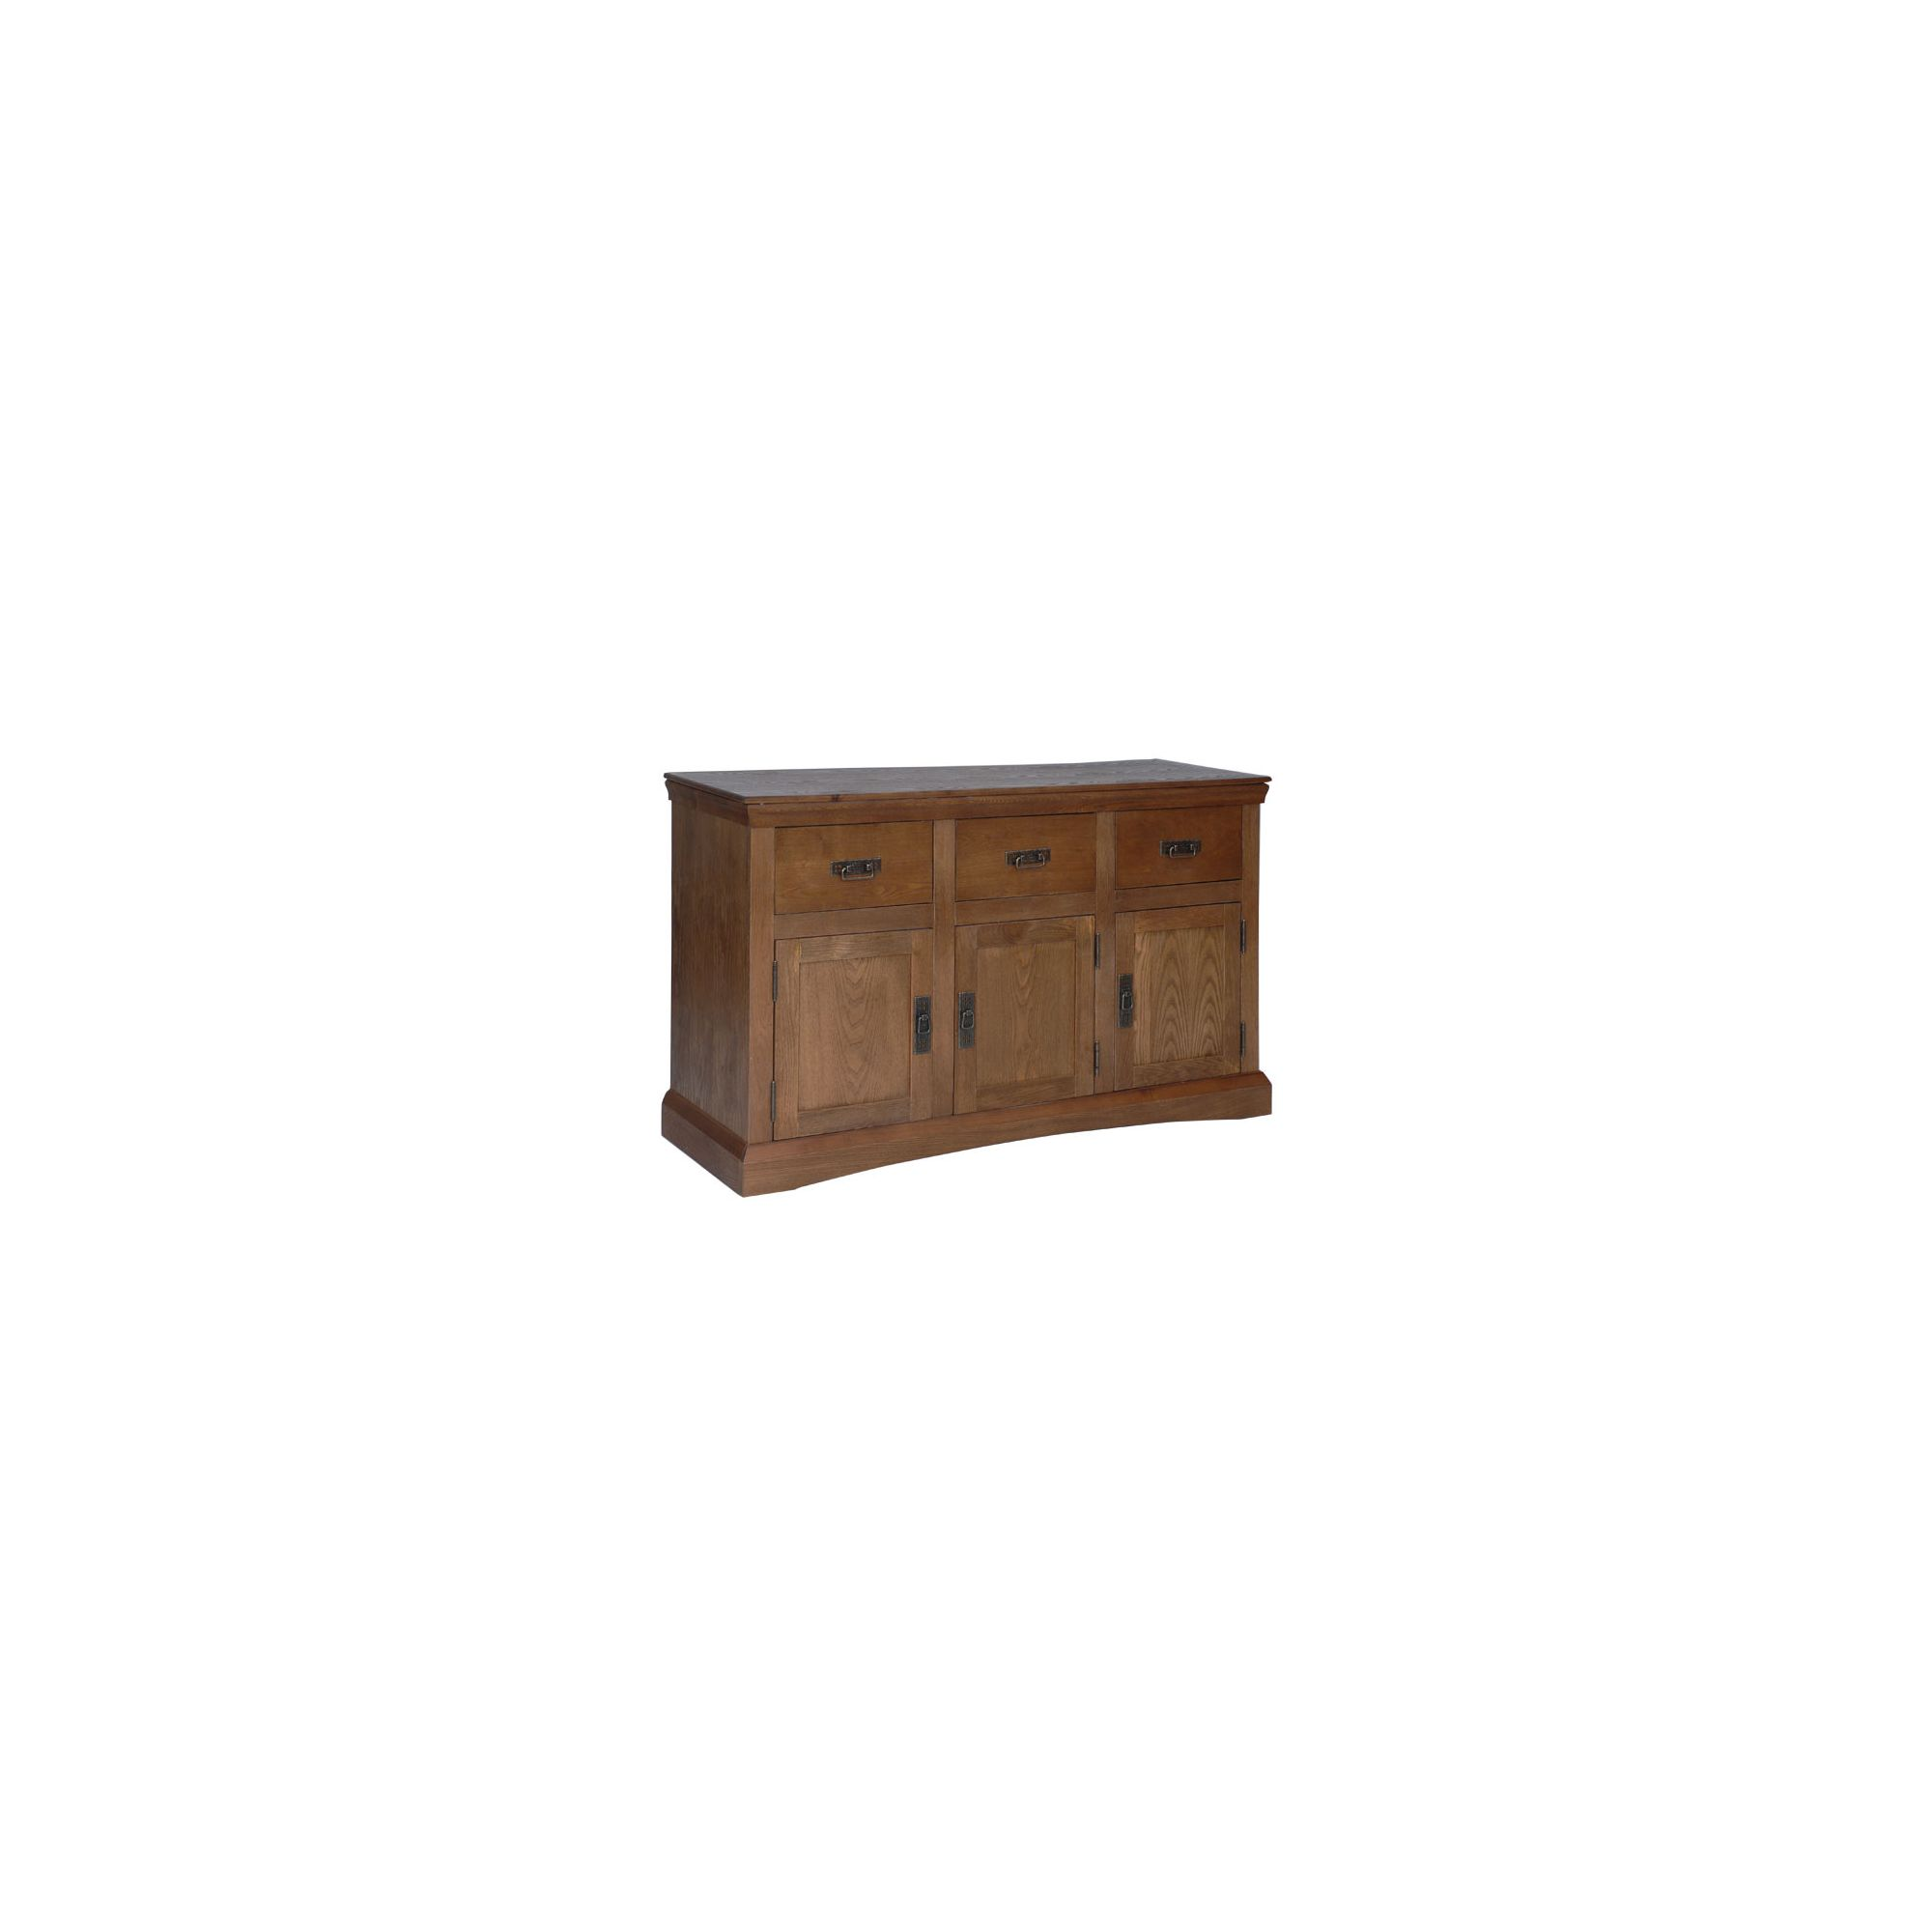 Home Essence Paris 3 Door 3 Drawer Sideboard at Tesco Direct